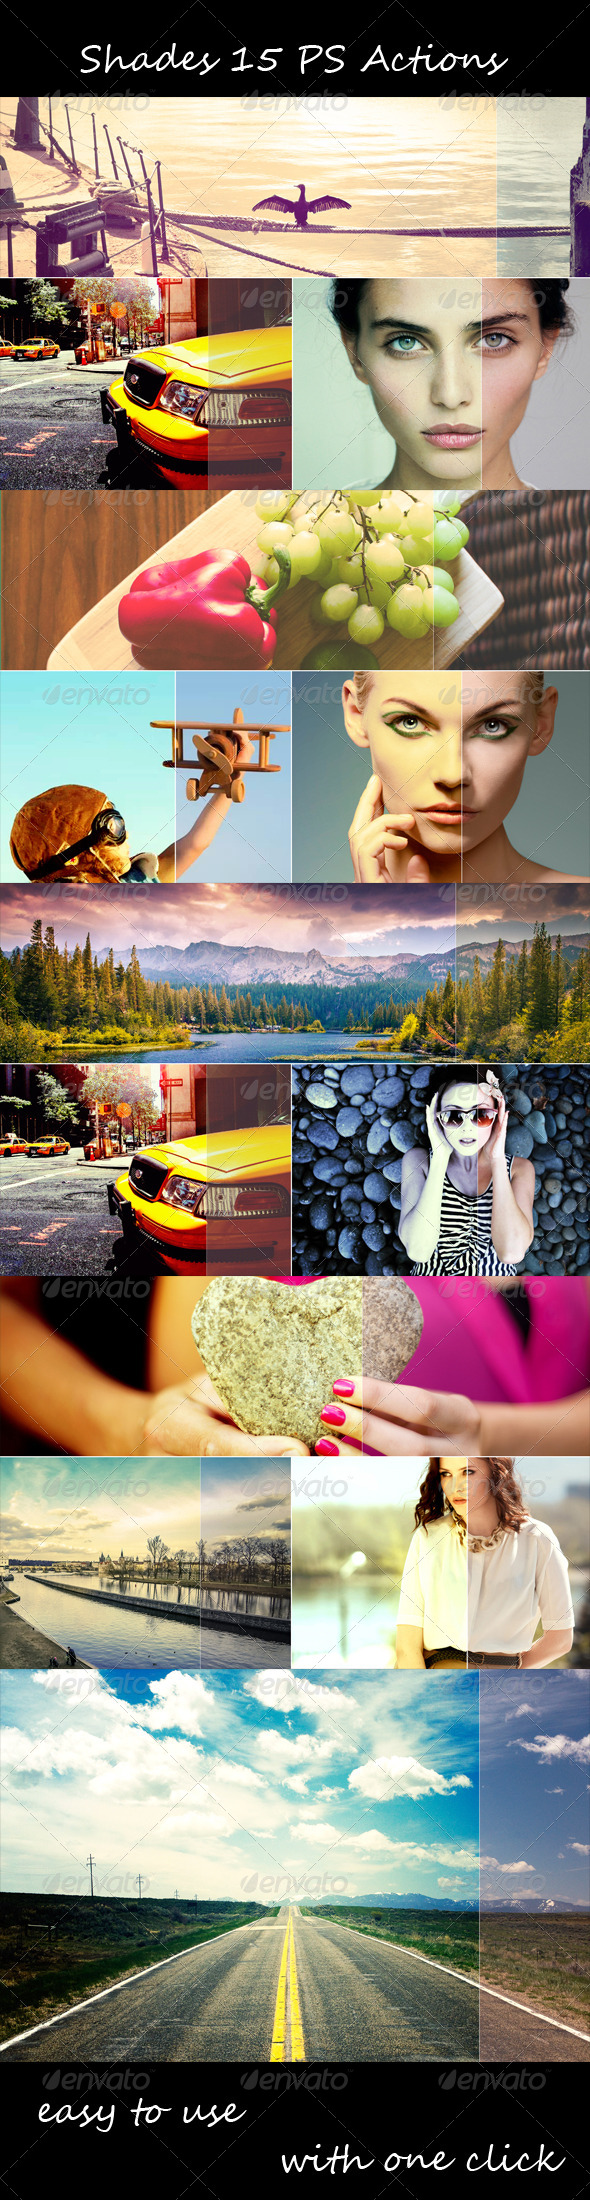 GraphicRiver Shades 15 PS Actions 8127491